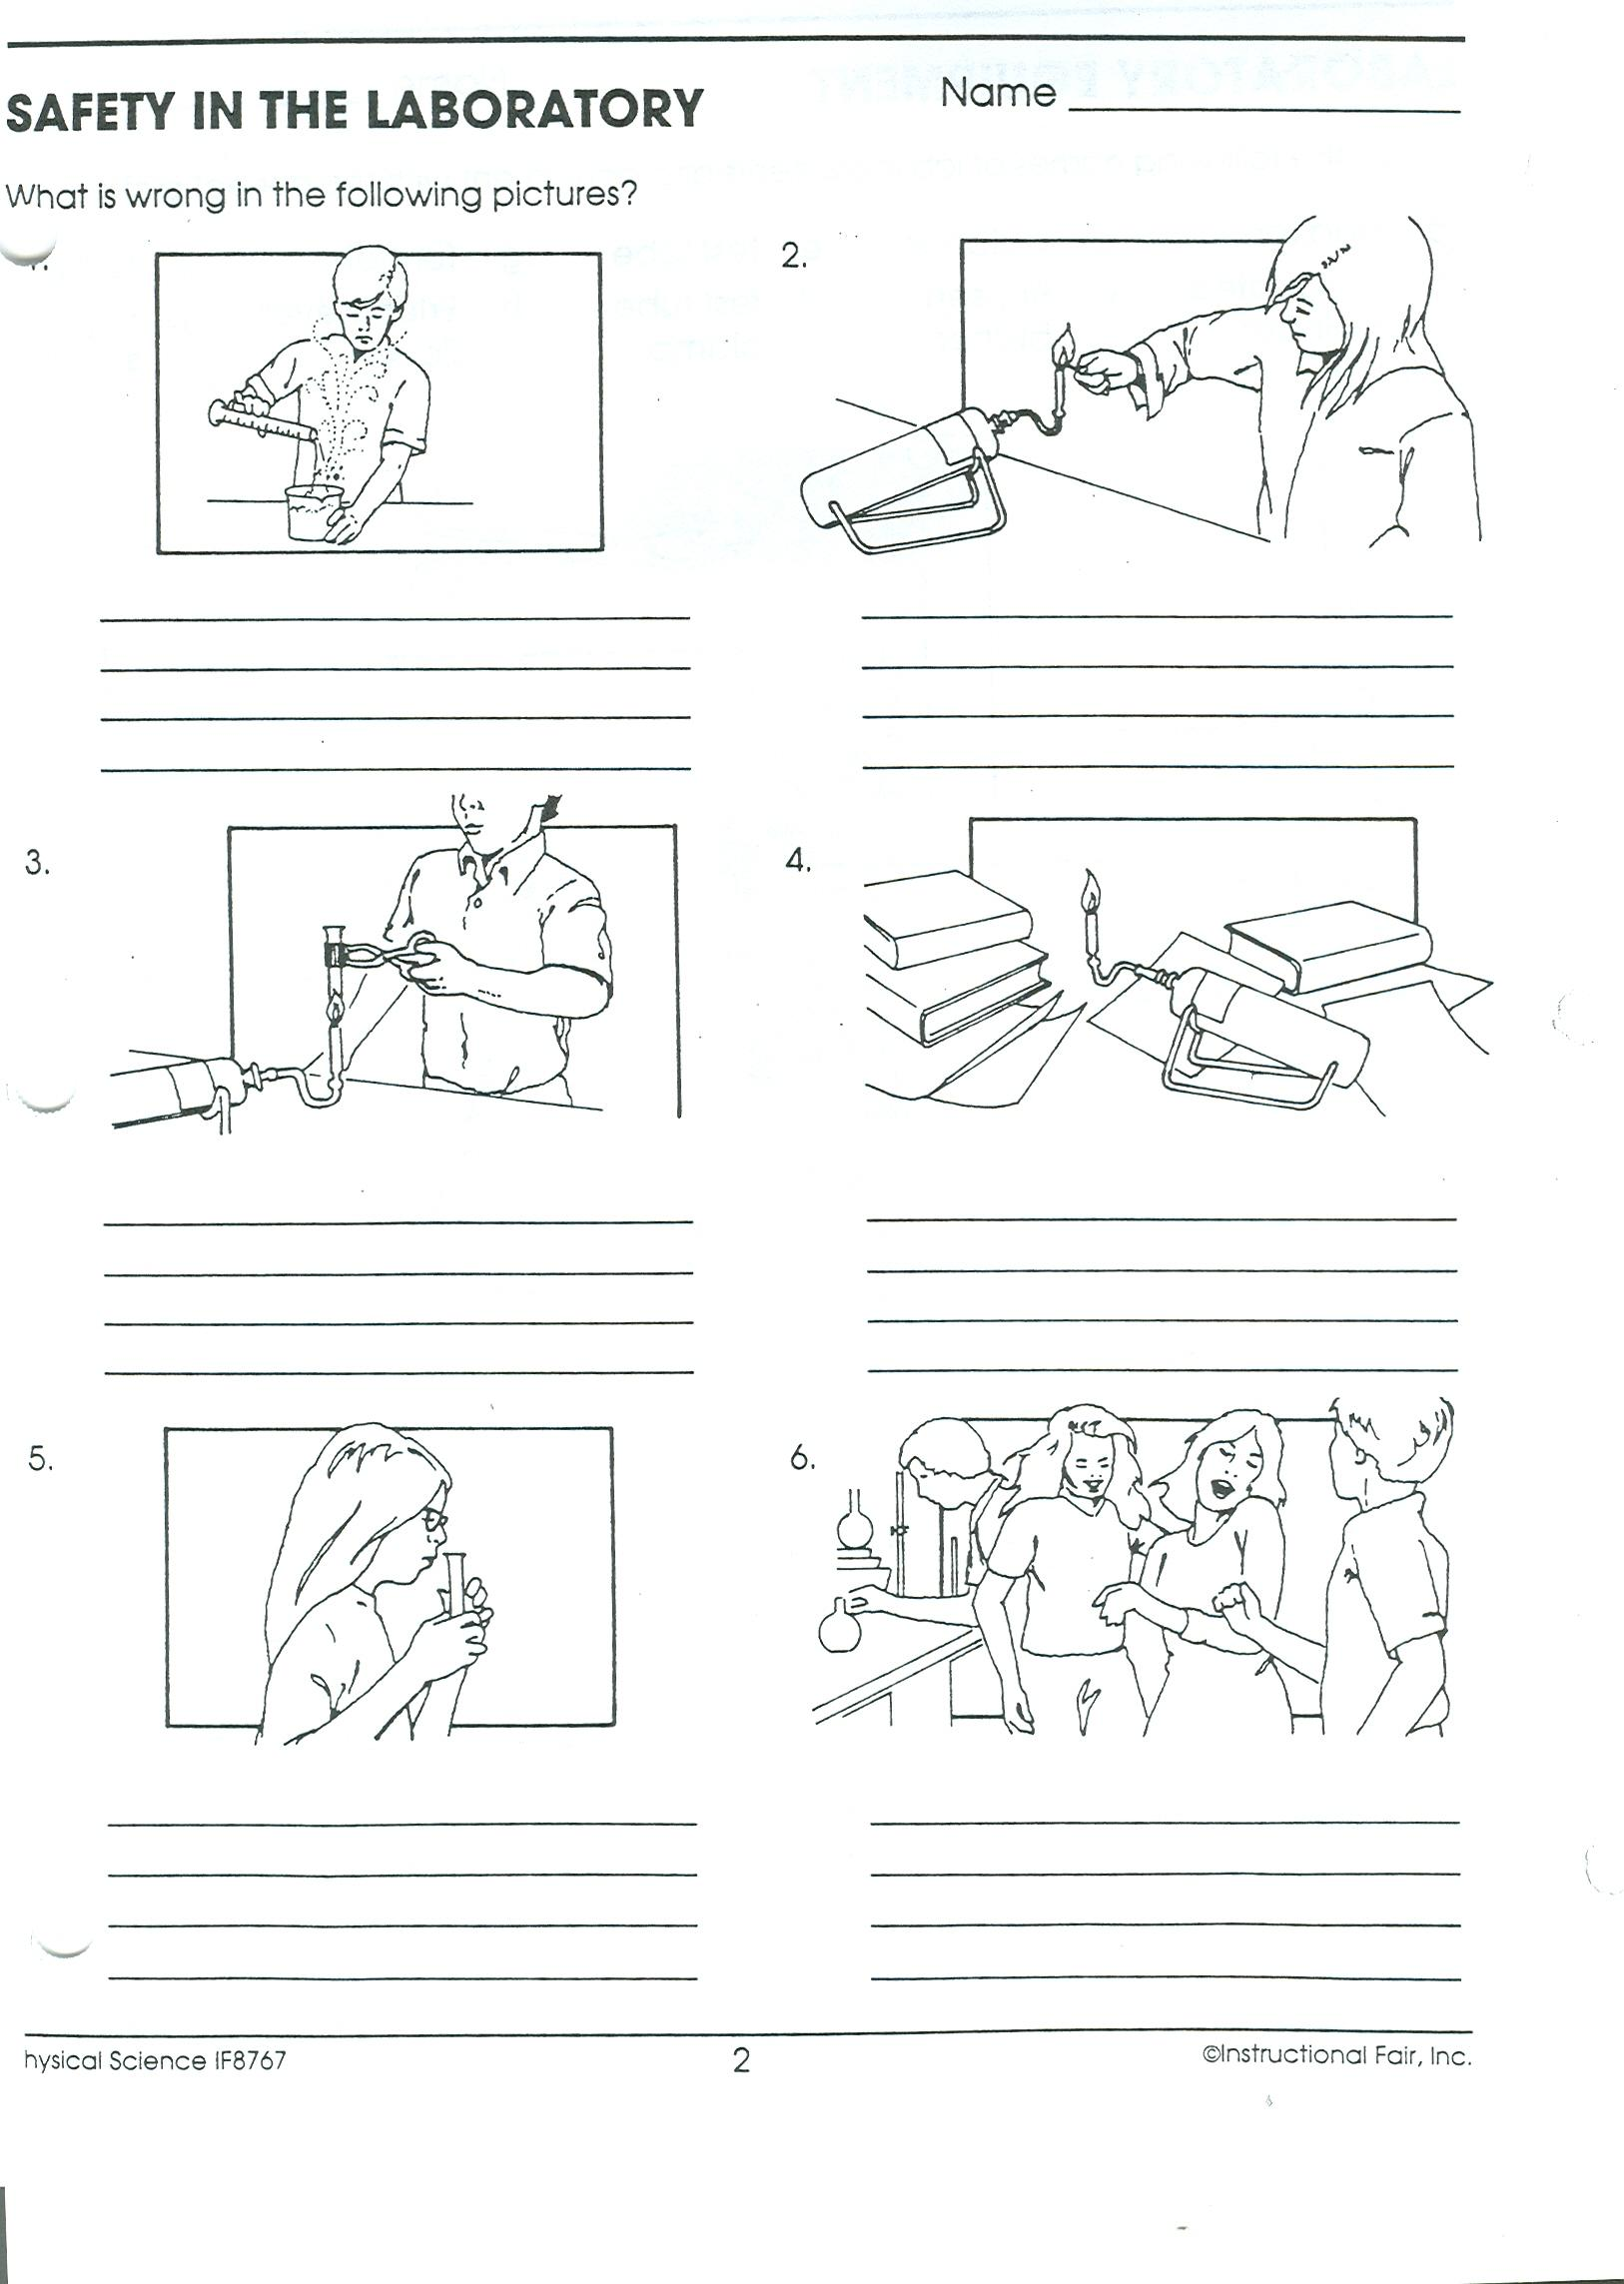 Science Laboratory Safety Rules Worksheet - Worksheets